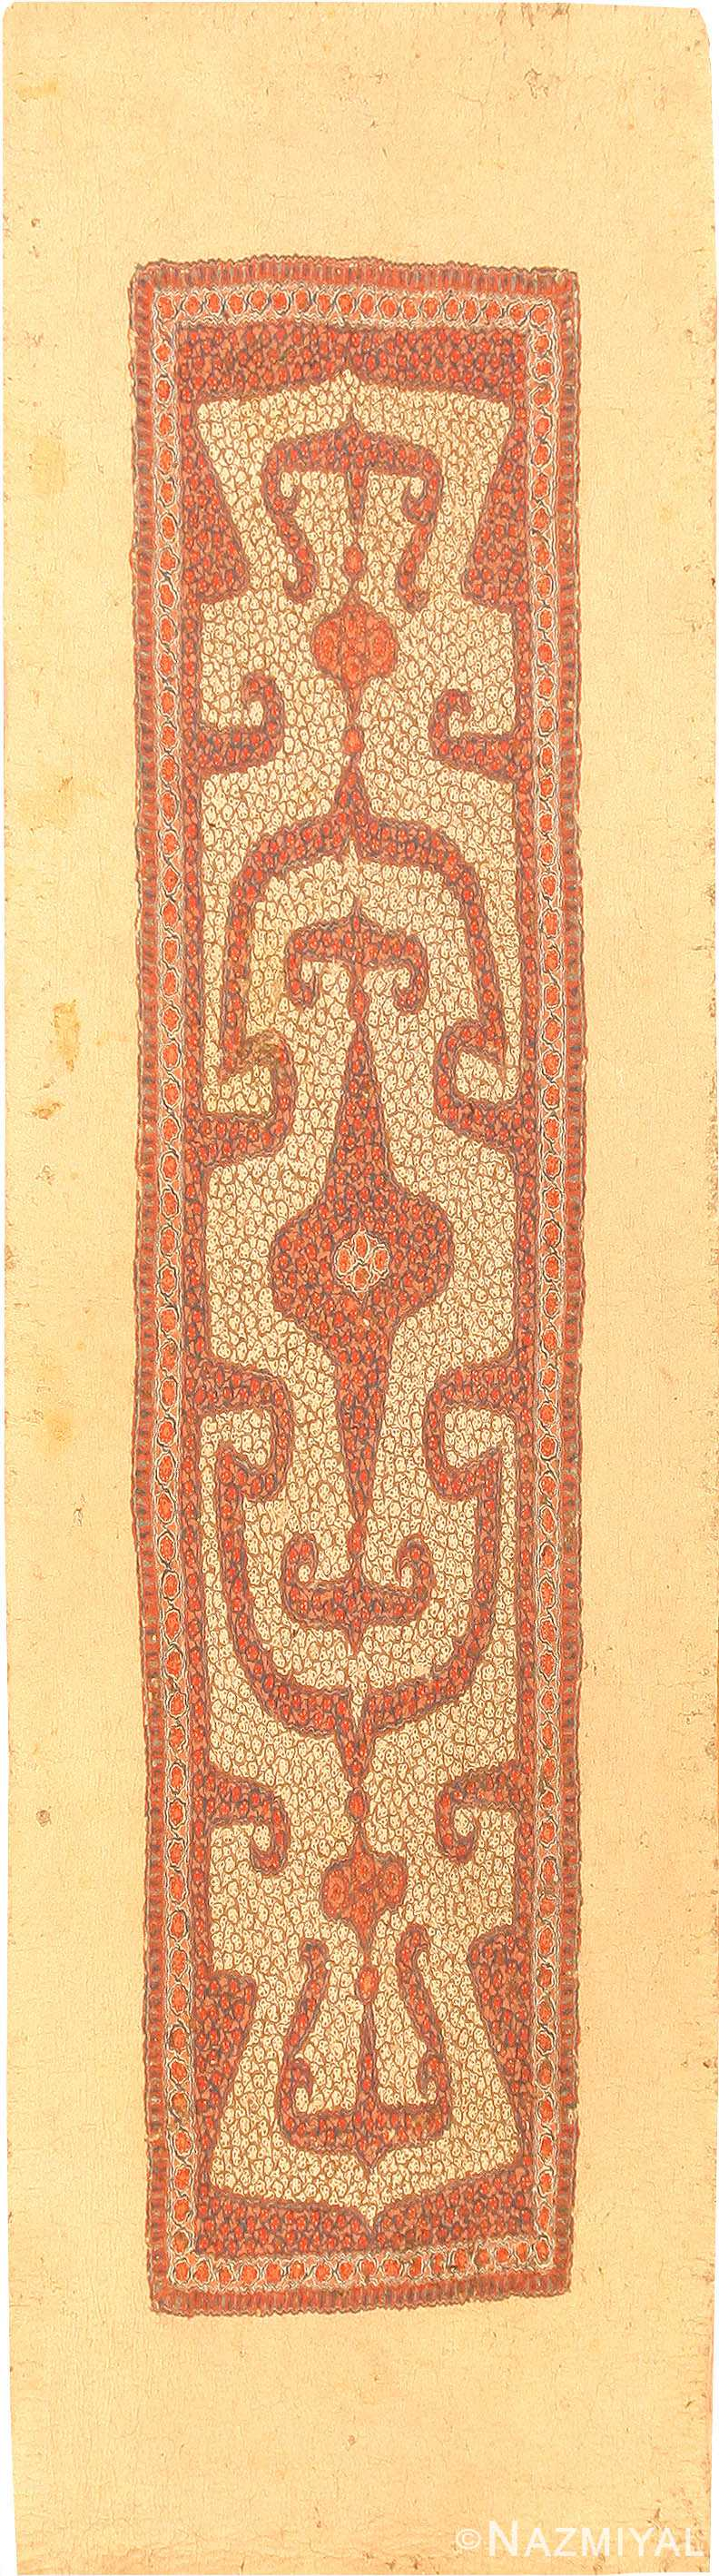 Antique Central Asia Rug 41407 Nazmiyal